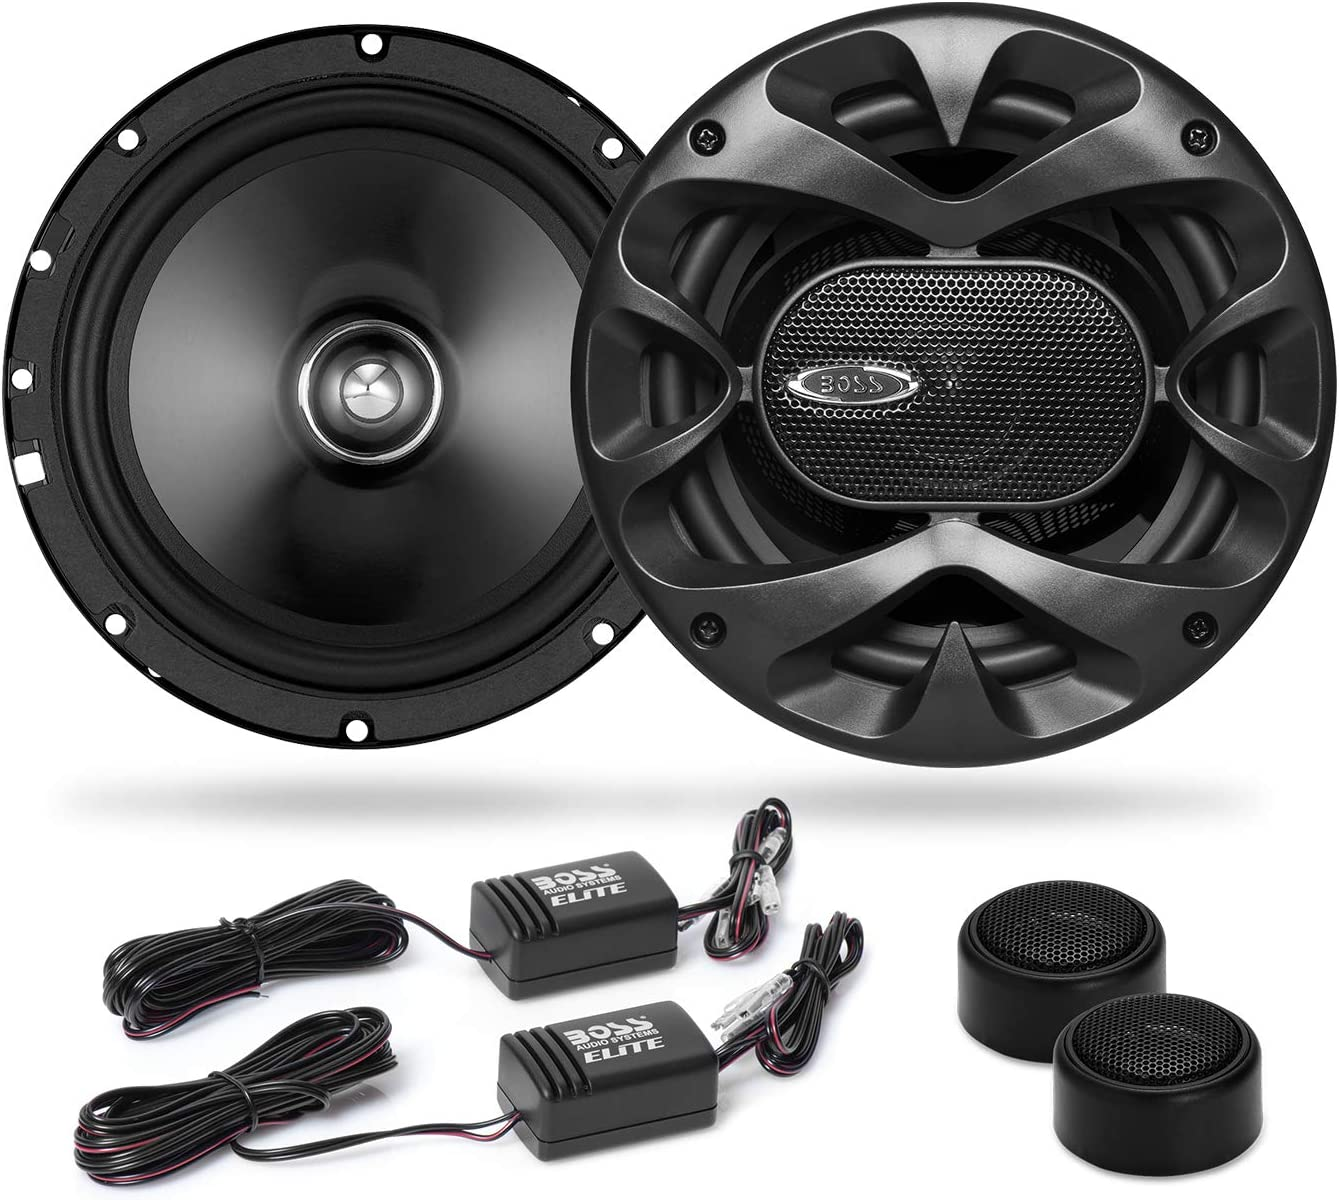 BOSS Audio Systems Elite BCK10 Component Car Speaker System - 10 10.10 Inch  Speakers, 10 Tweeters, 10 Crossovers, 3100 Watts Max Power